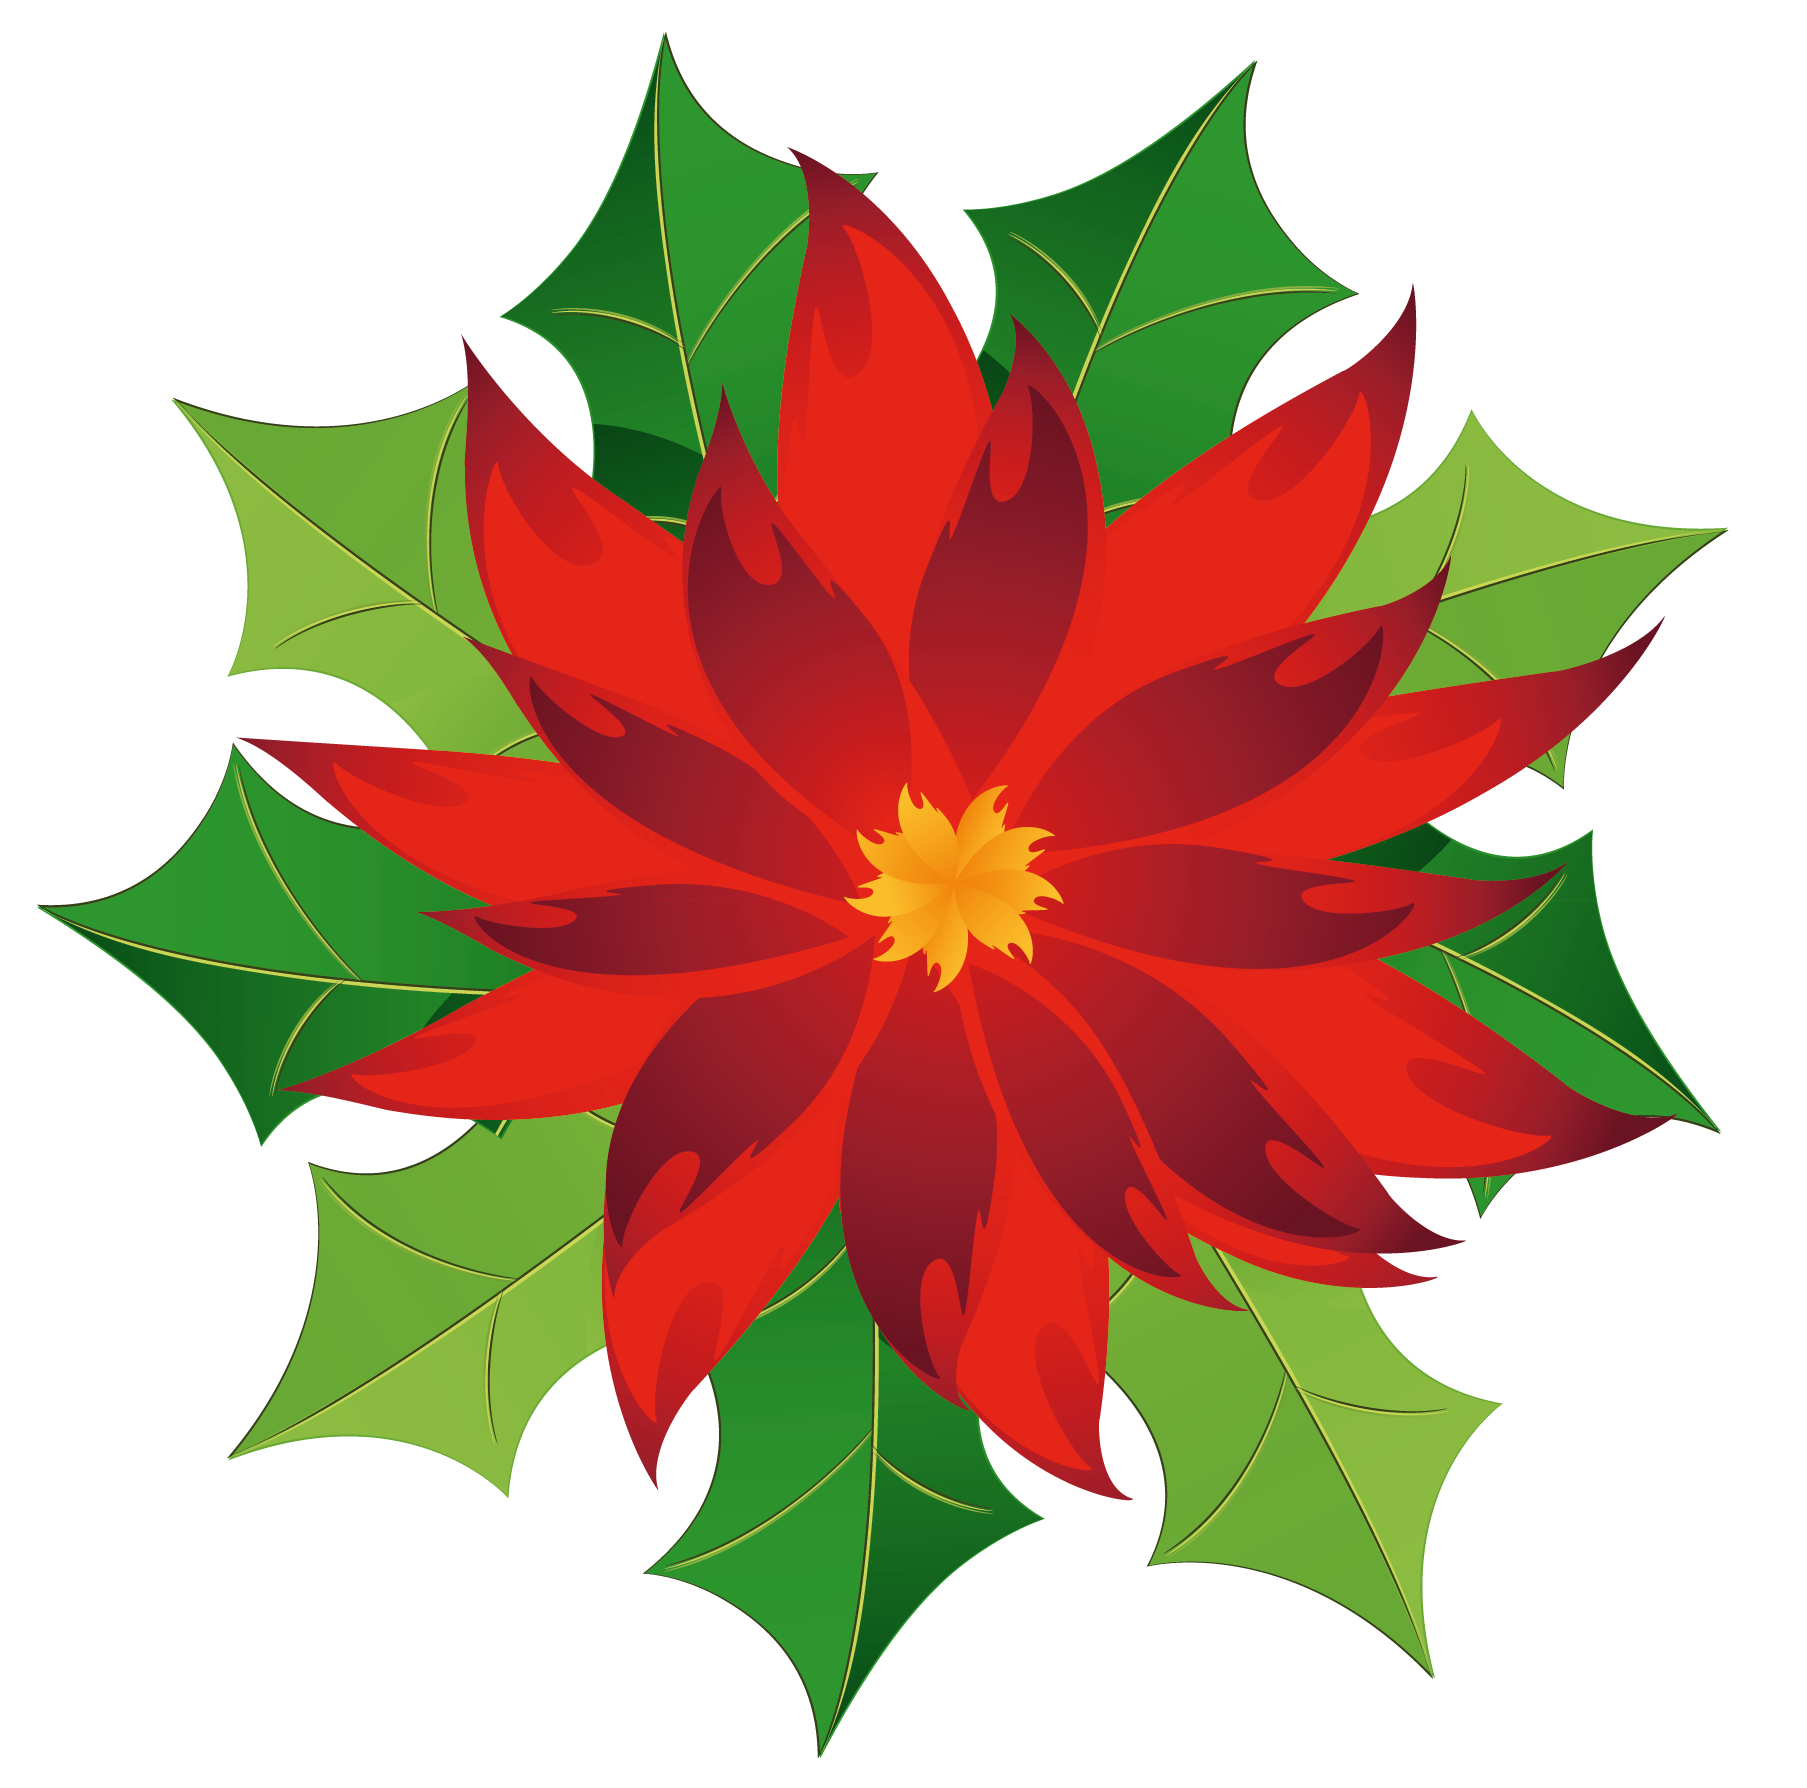 royalty free download Free cliparts download clip. Poinsettias clipart.